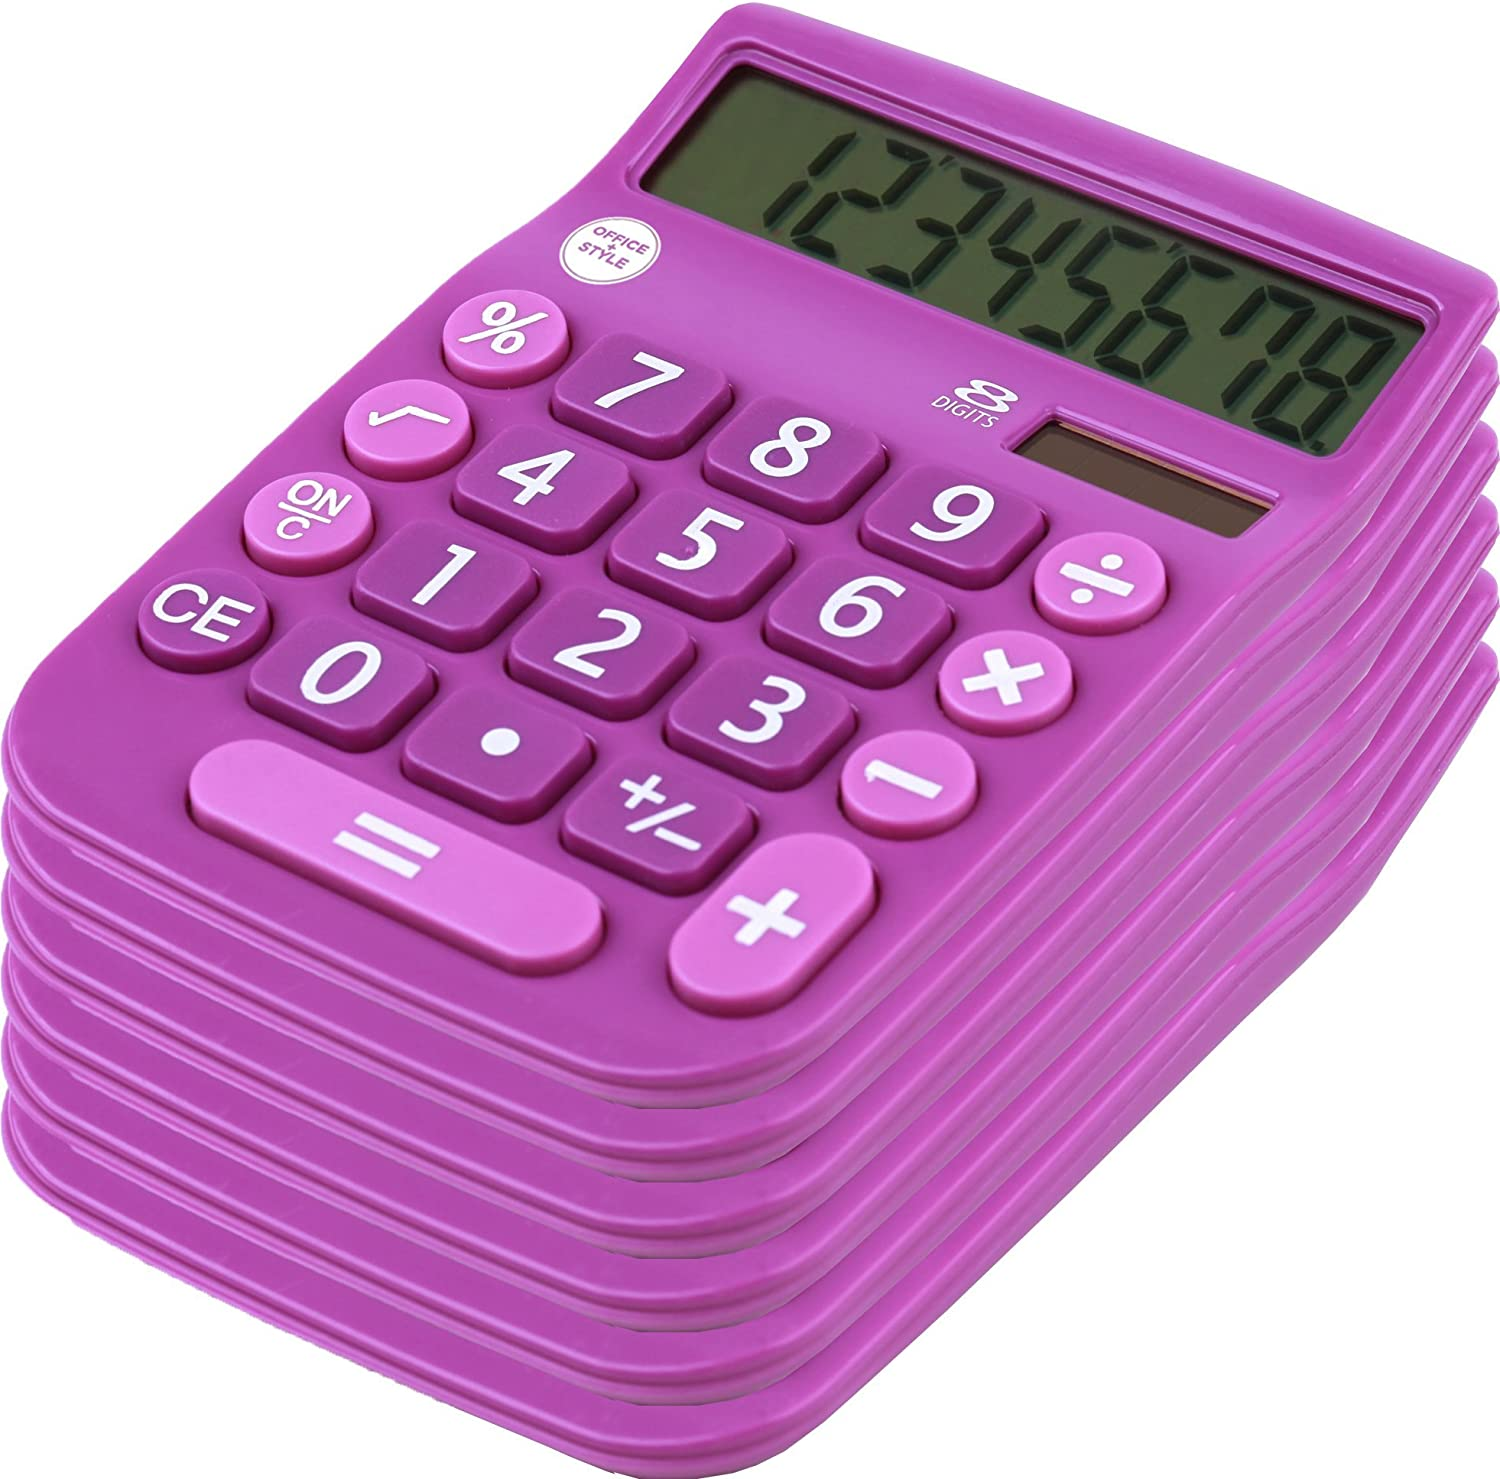 Office + Style 8 Digit Dual Powered Calculator with Large LCD Display, Lavender (Pack of 6)